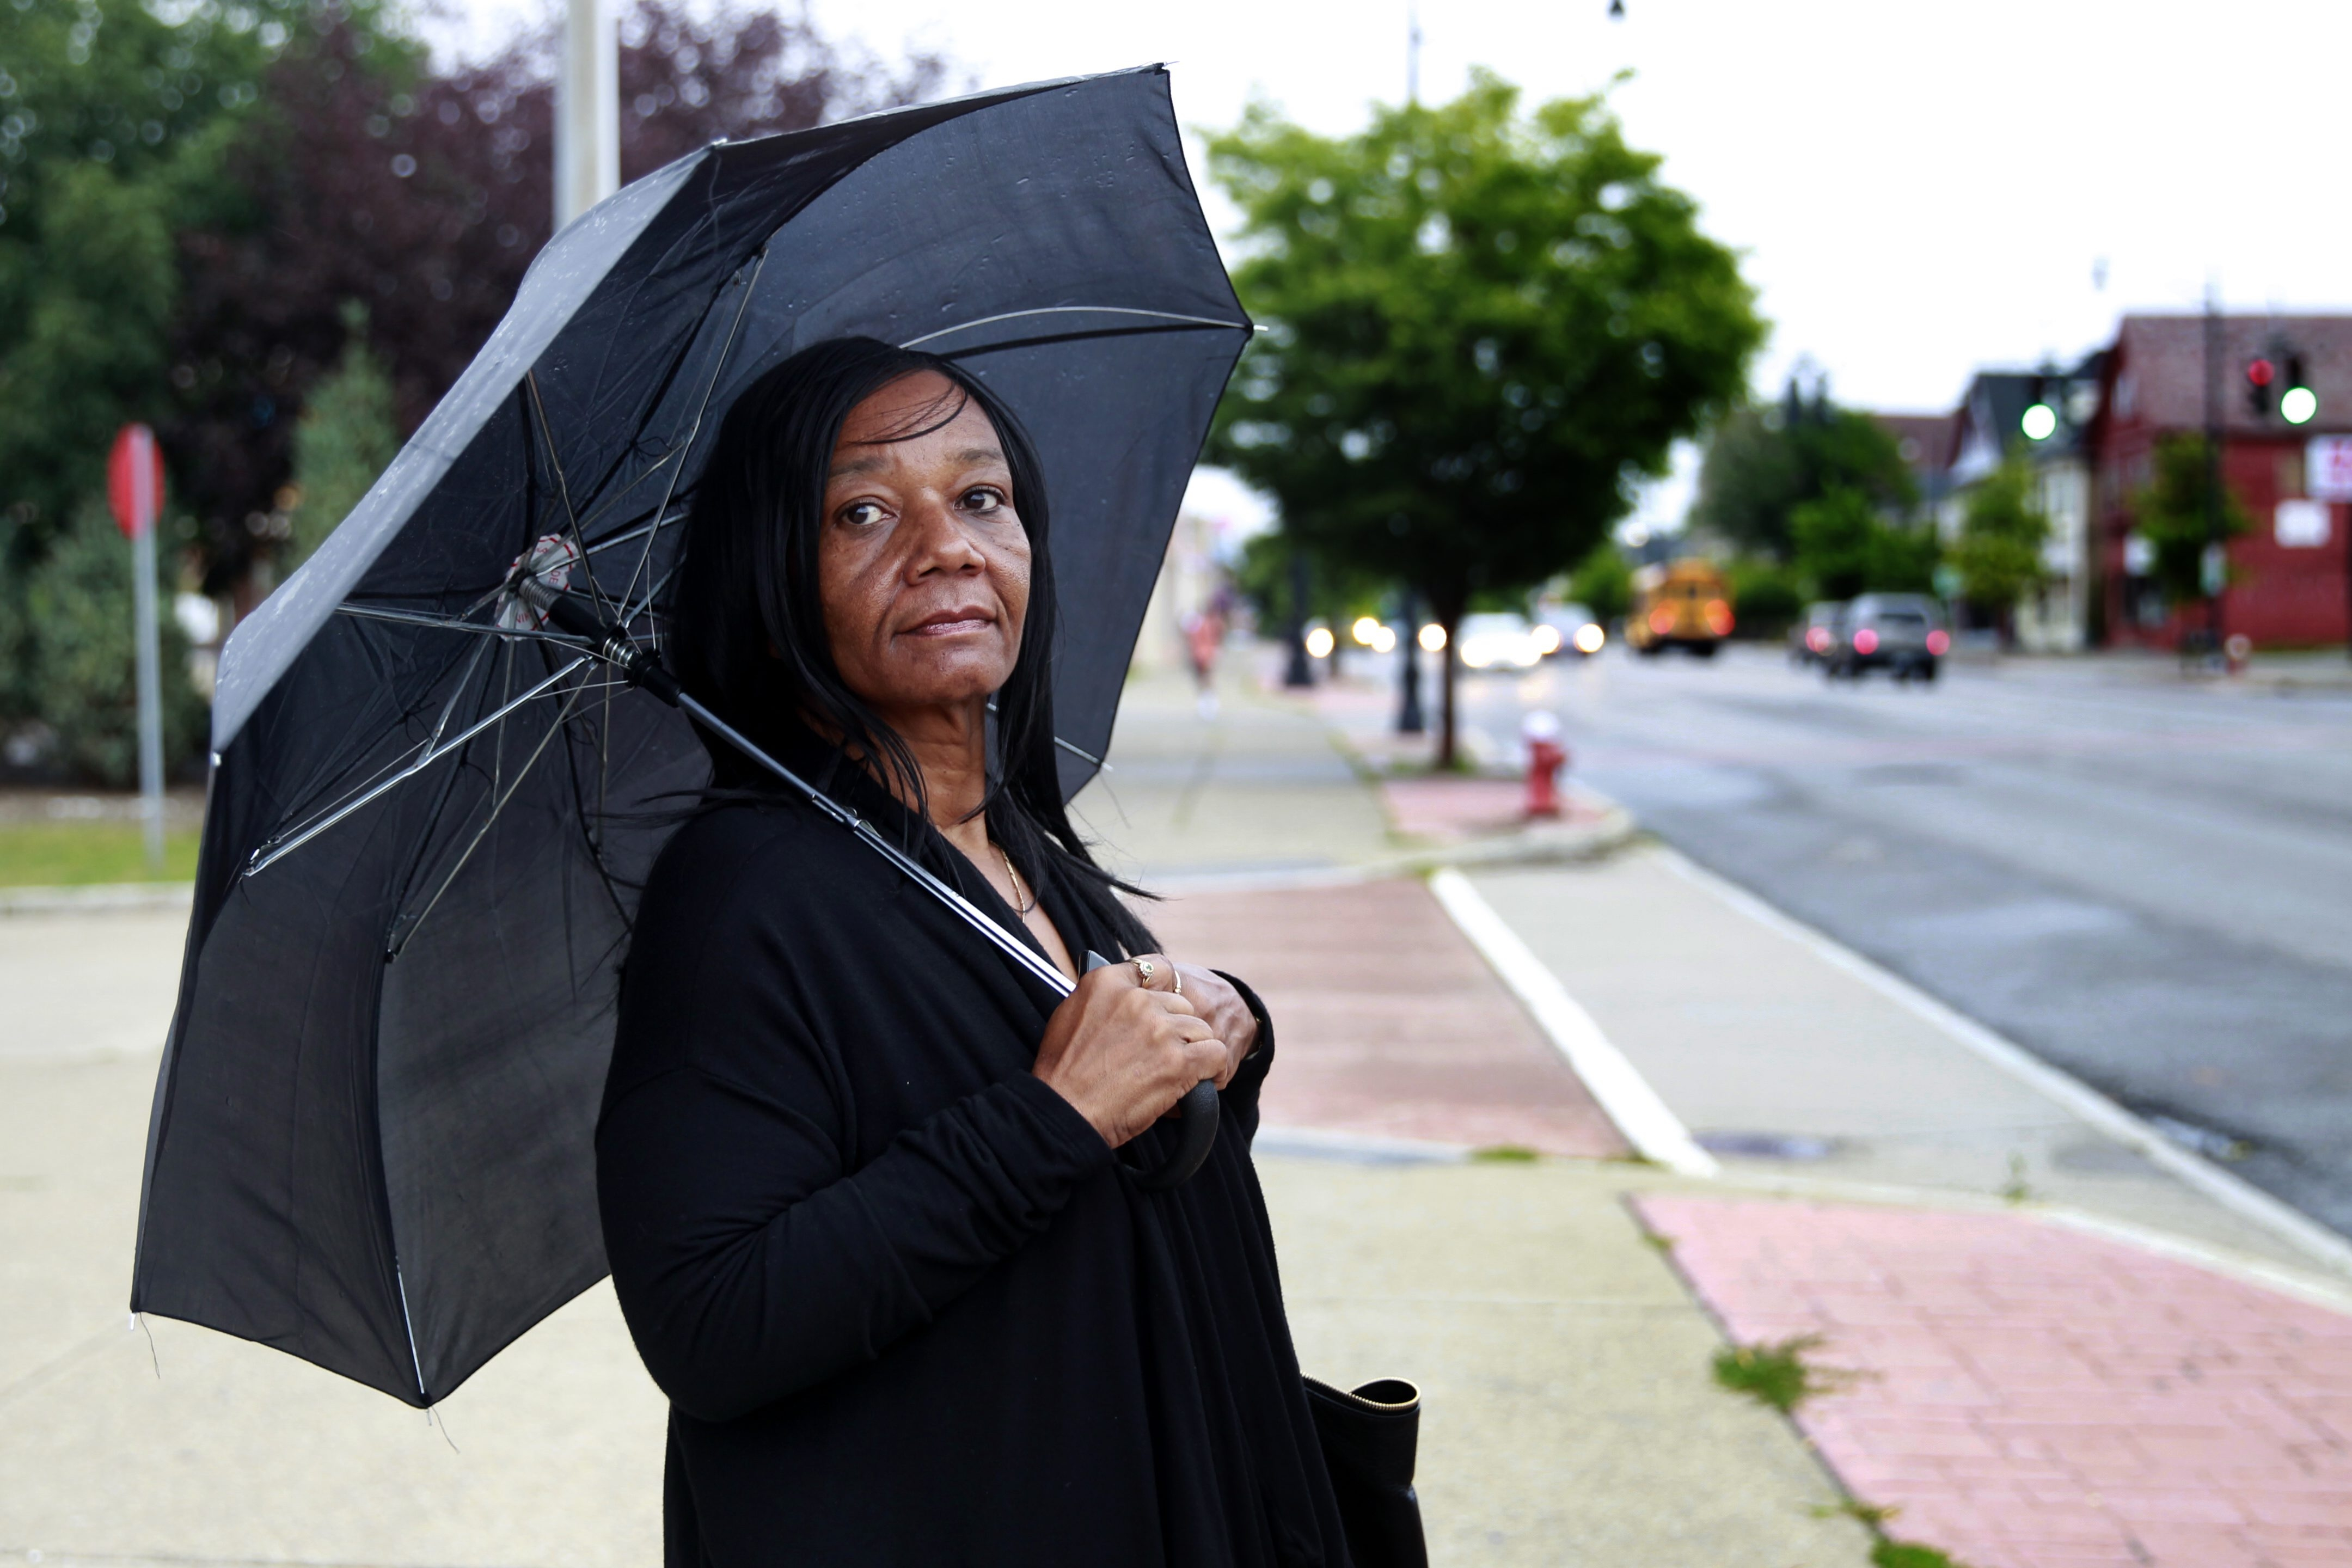 Karen Banks waits for a bus at the corner of Main Street and LaSalle Avenue on Monday as a mist falls.